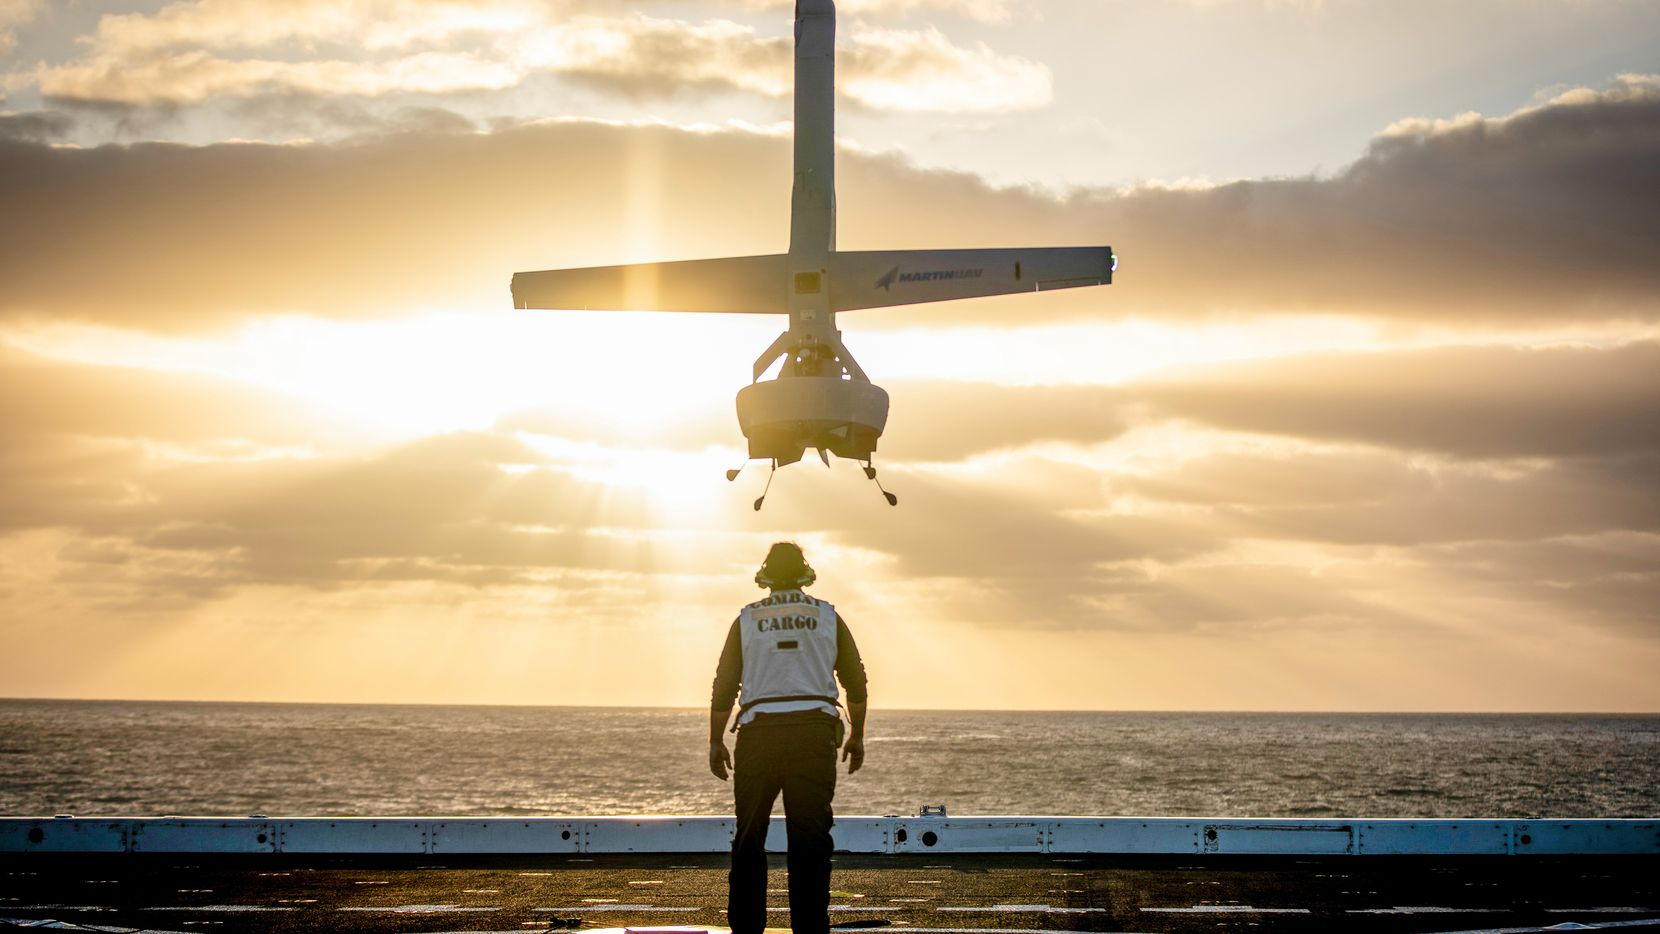 Martin UAV's V-BAT unmanned aircraft will be integrated with Shield AI's autonomy software.